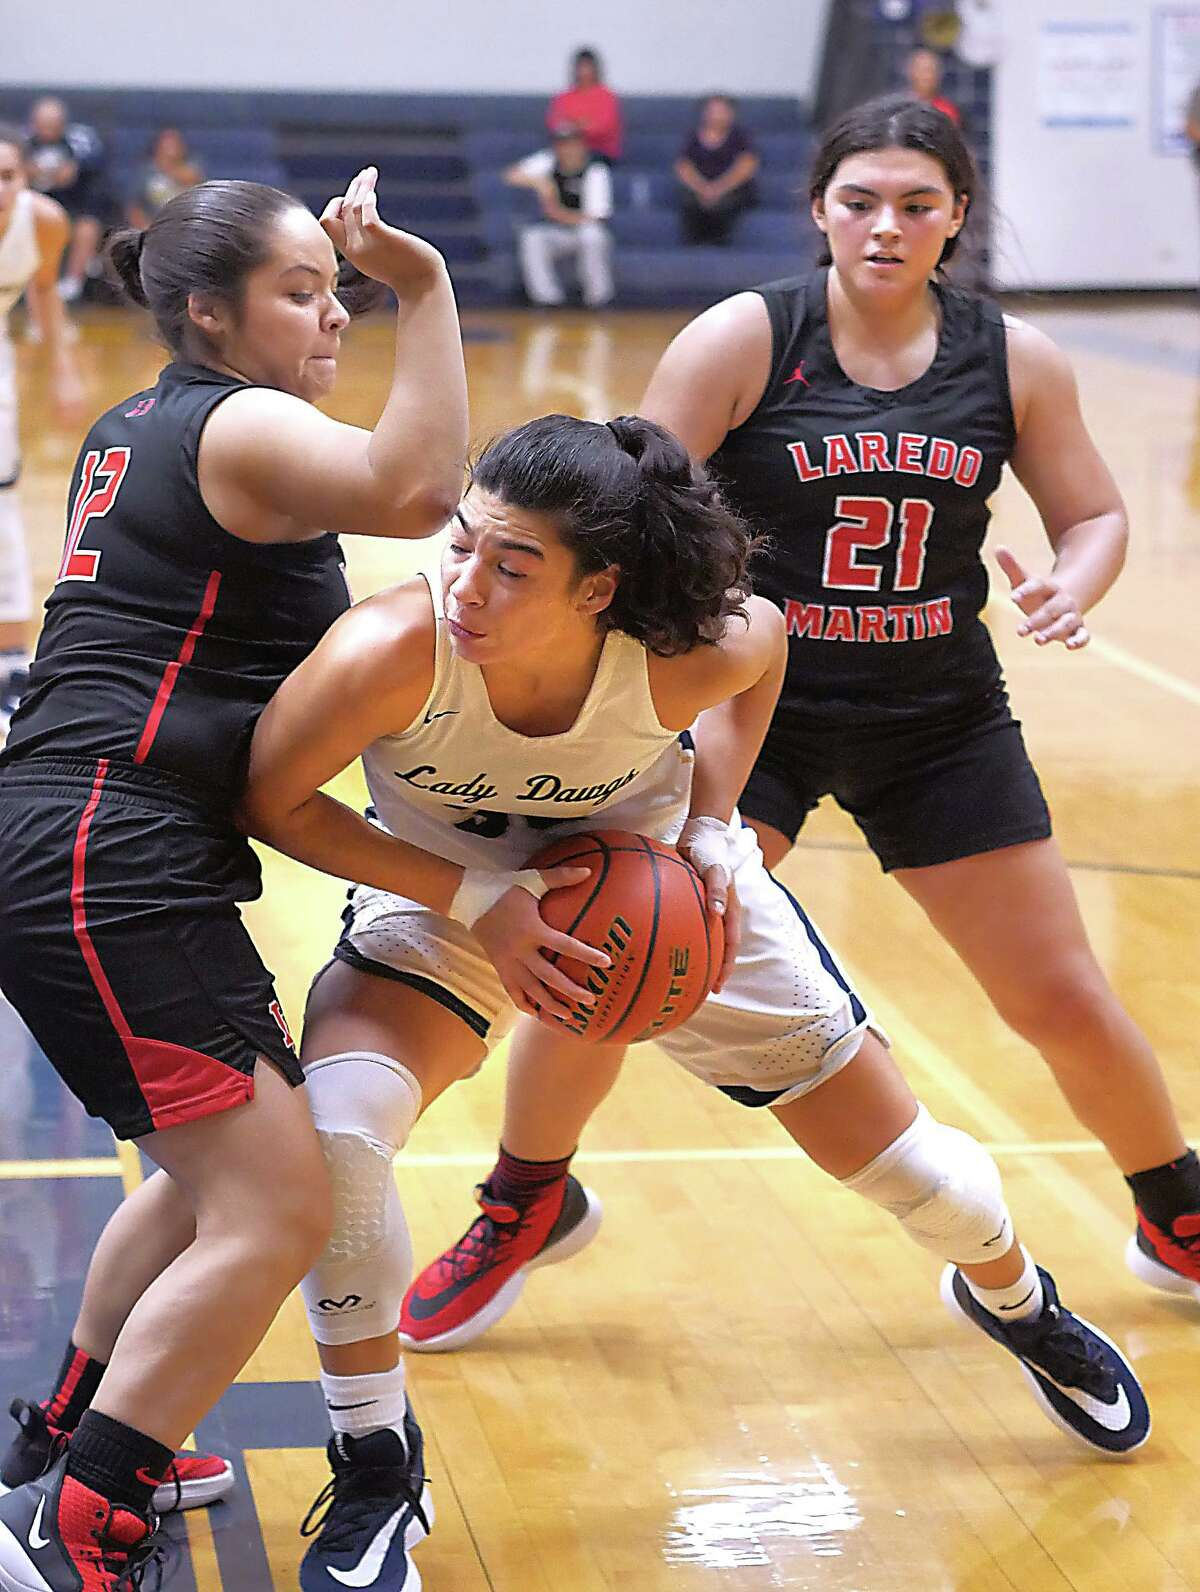 Aly Benavides and Alexander hosts Cigarroa in non-district action at 2:30 p.m. Monday.